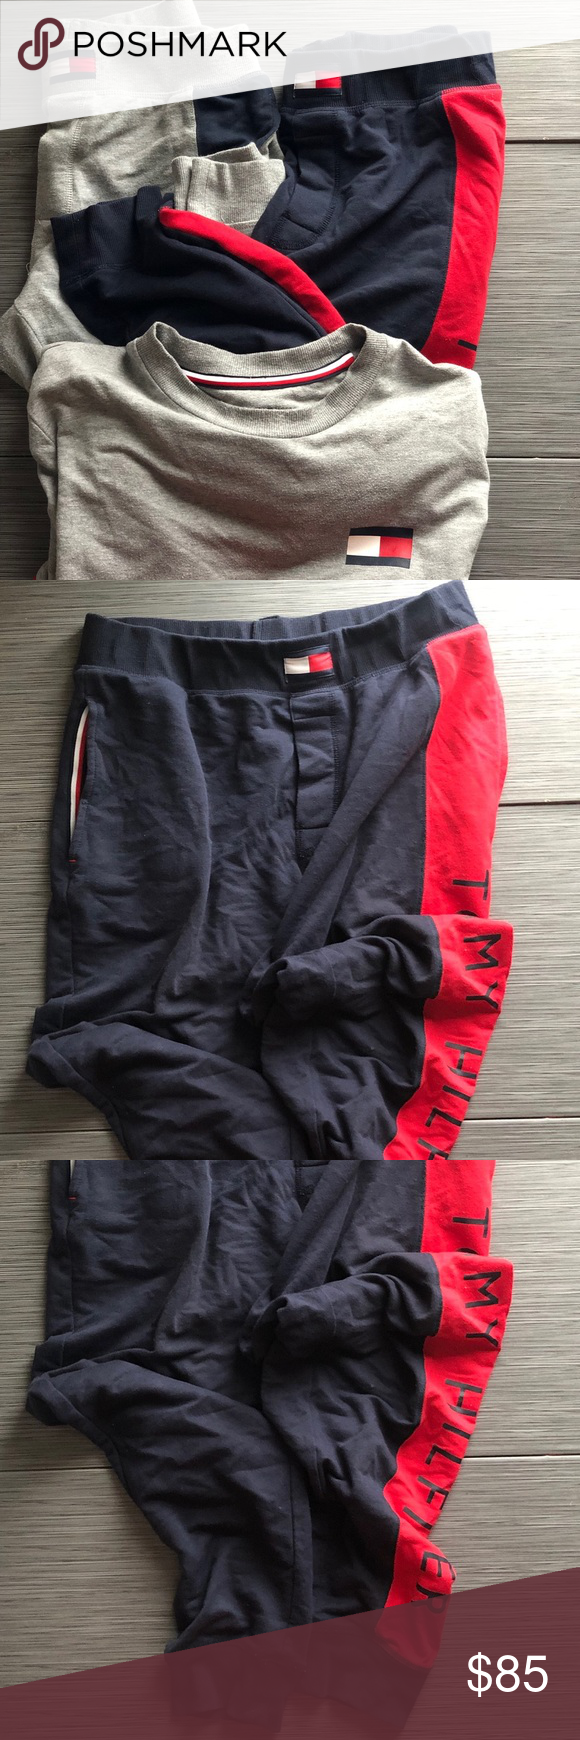 TOMMY HILFIGER BUNDLE of 2 SWEATS JOGGER PANTS Navy red jogger sweat  sz medium Grey sweat jogger  sz small fits like small and medium hastagsGucciLouisVuittonBagsBackpac...